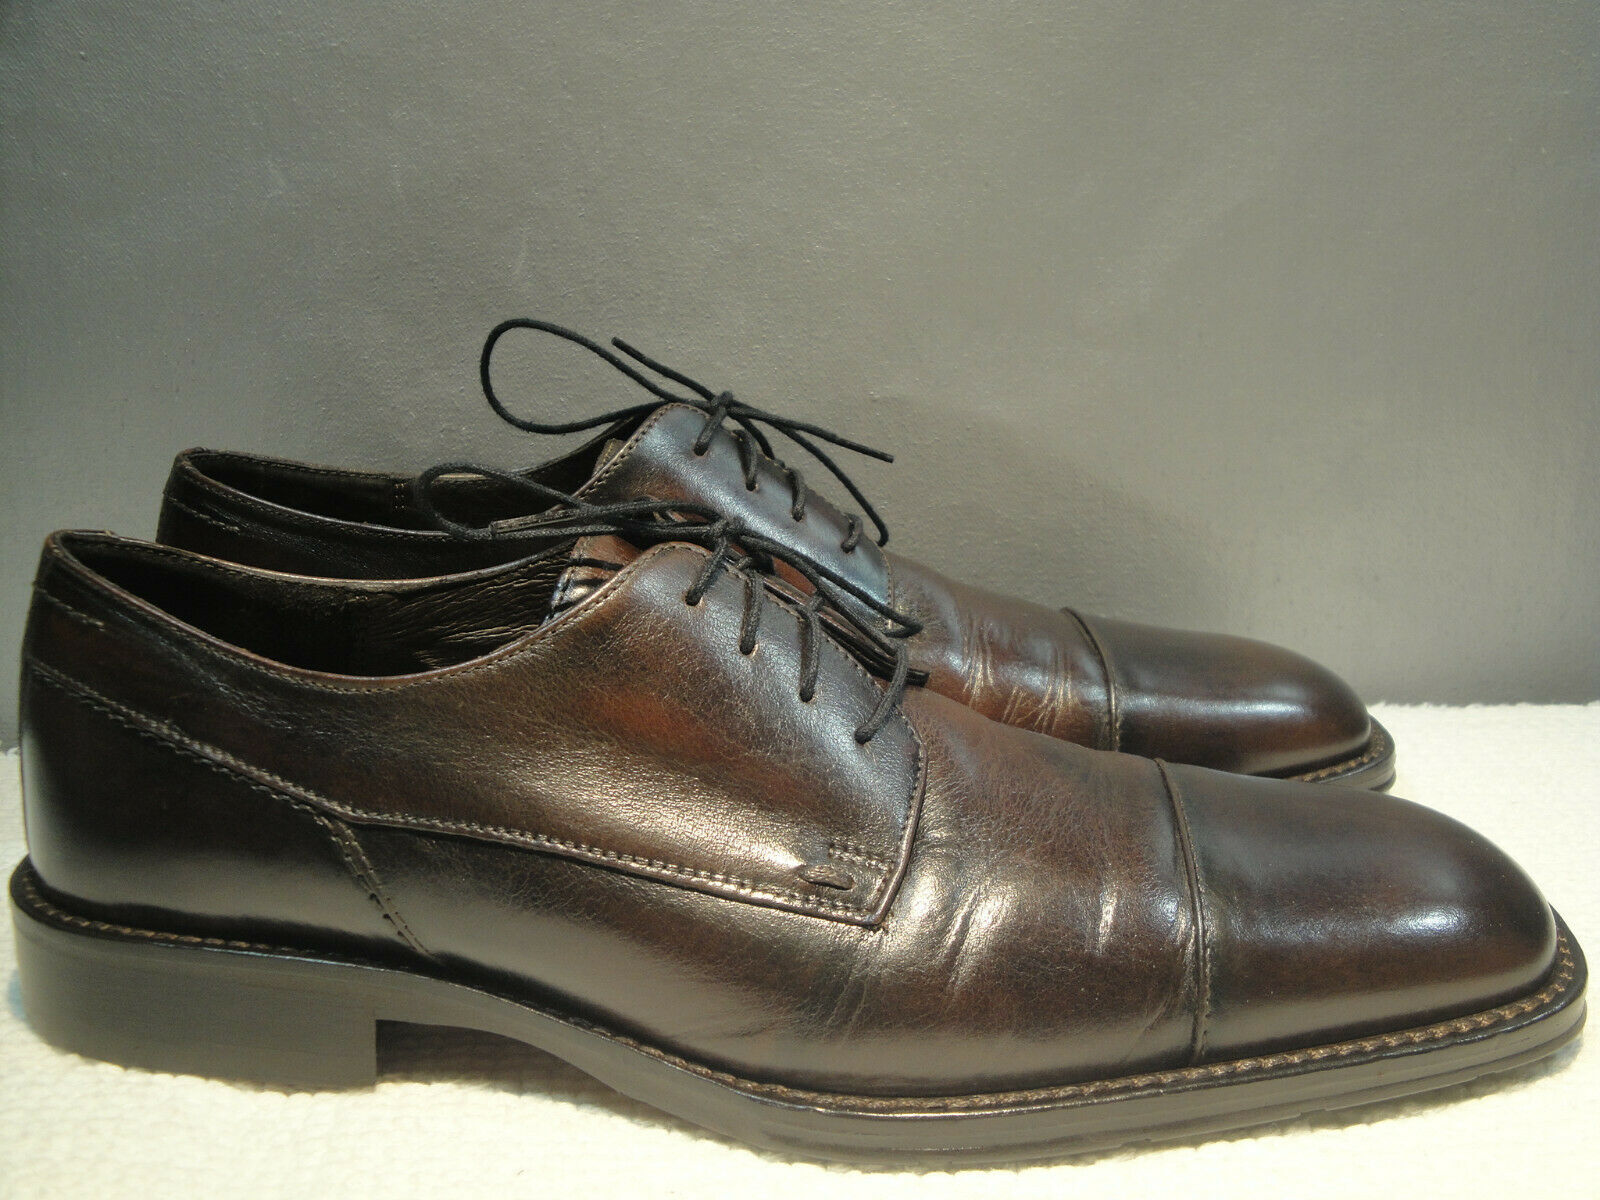 MENS 10 M JOHNSTON MURPHY ROMANIA BROWN LEATHER CAP TOE OXFORD SHOES